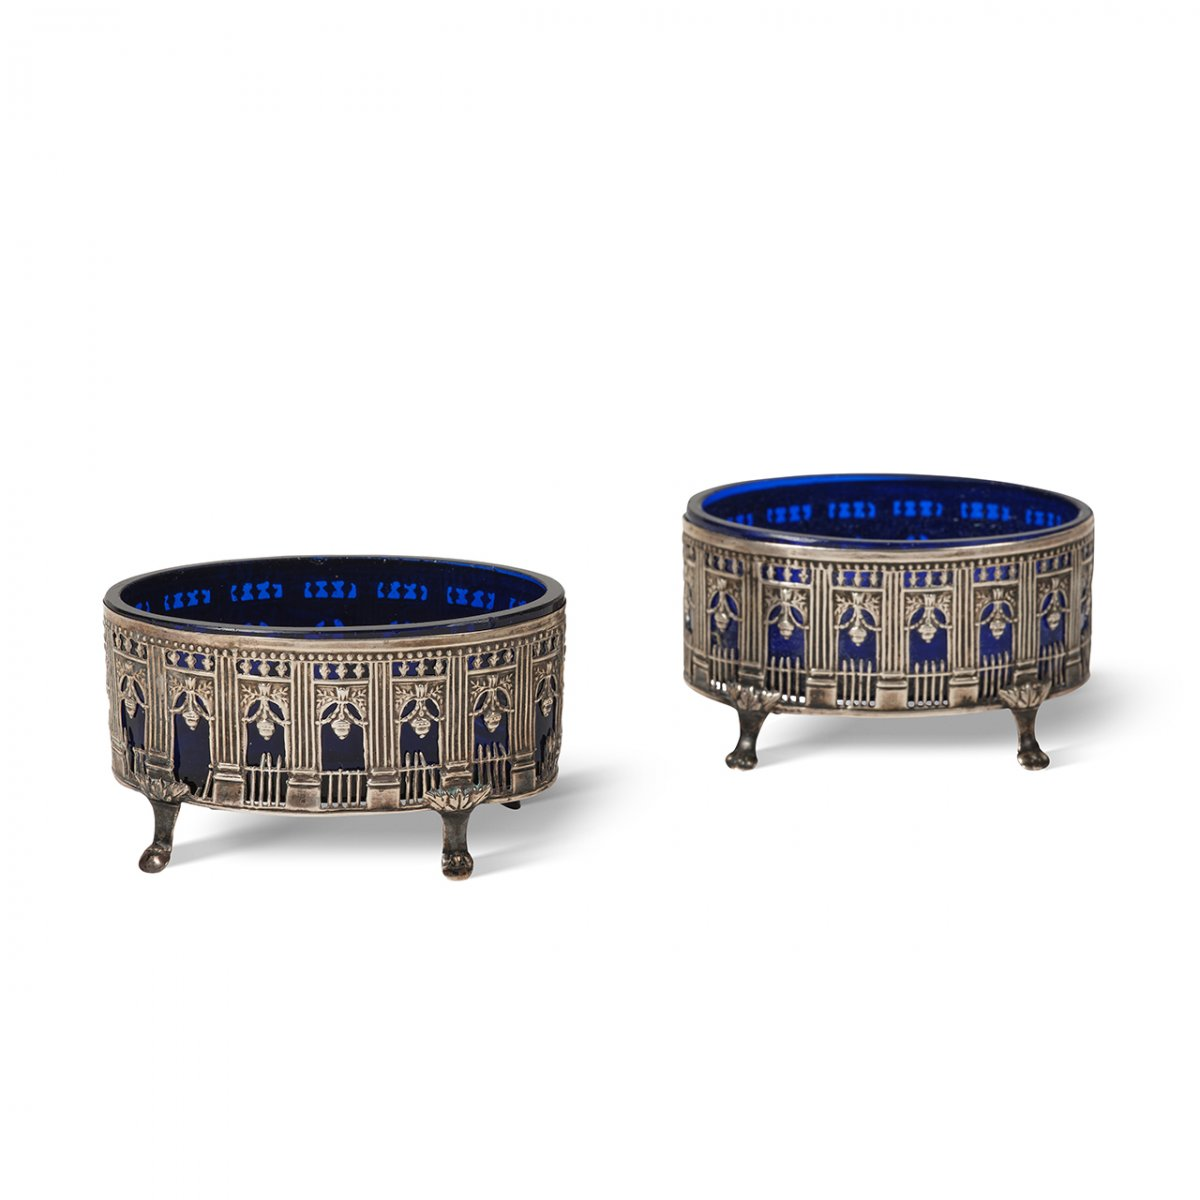 Pair Of Salt Shakers In Silver And Blue Glass Louis XVI Figuring The Arcades Of The Palais-royal